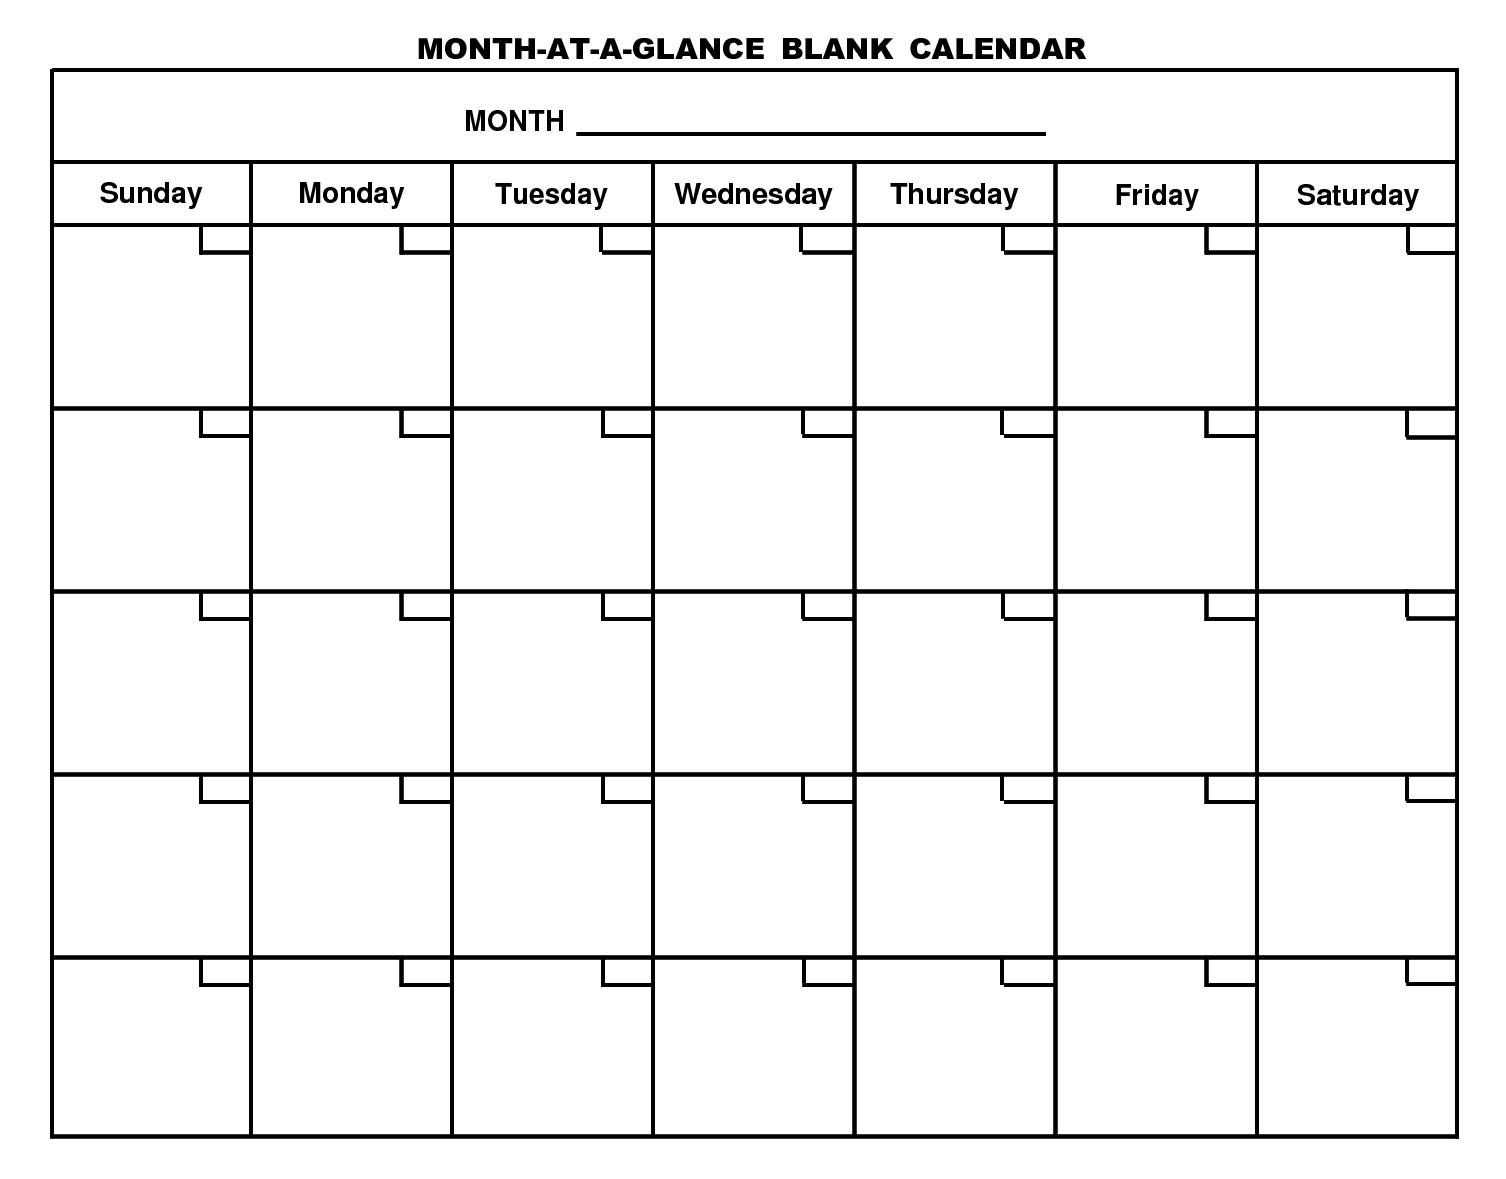 Month At A Glance Blank Calendar Template - Atlantaauctionco For Month At A Glance Blank Calendar Template